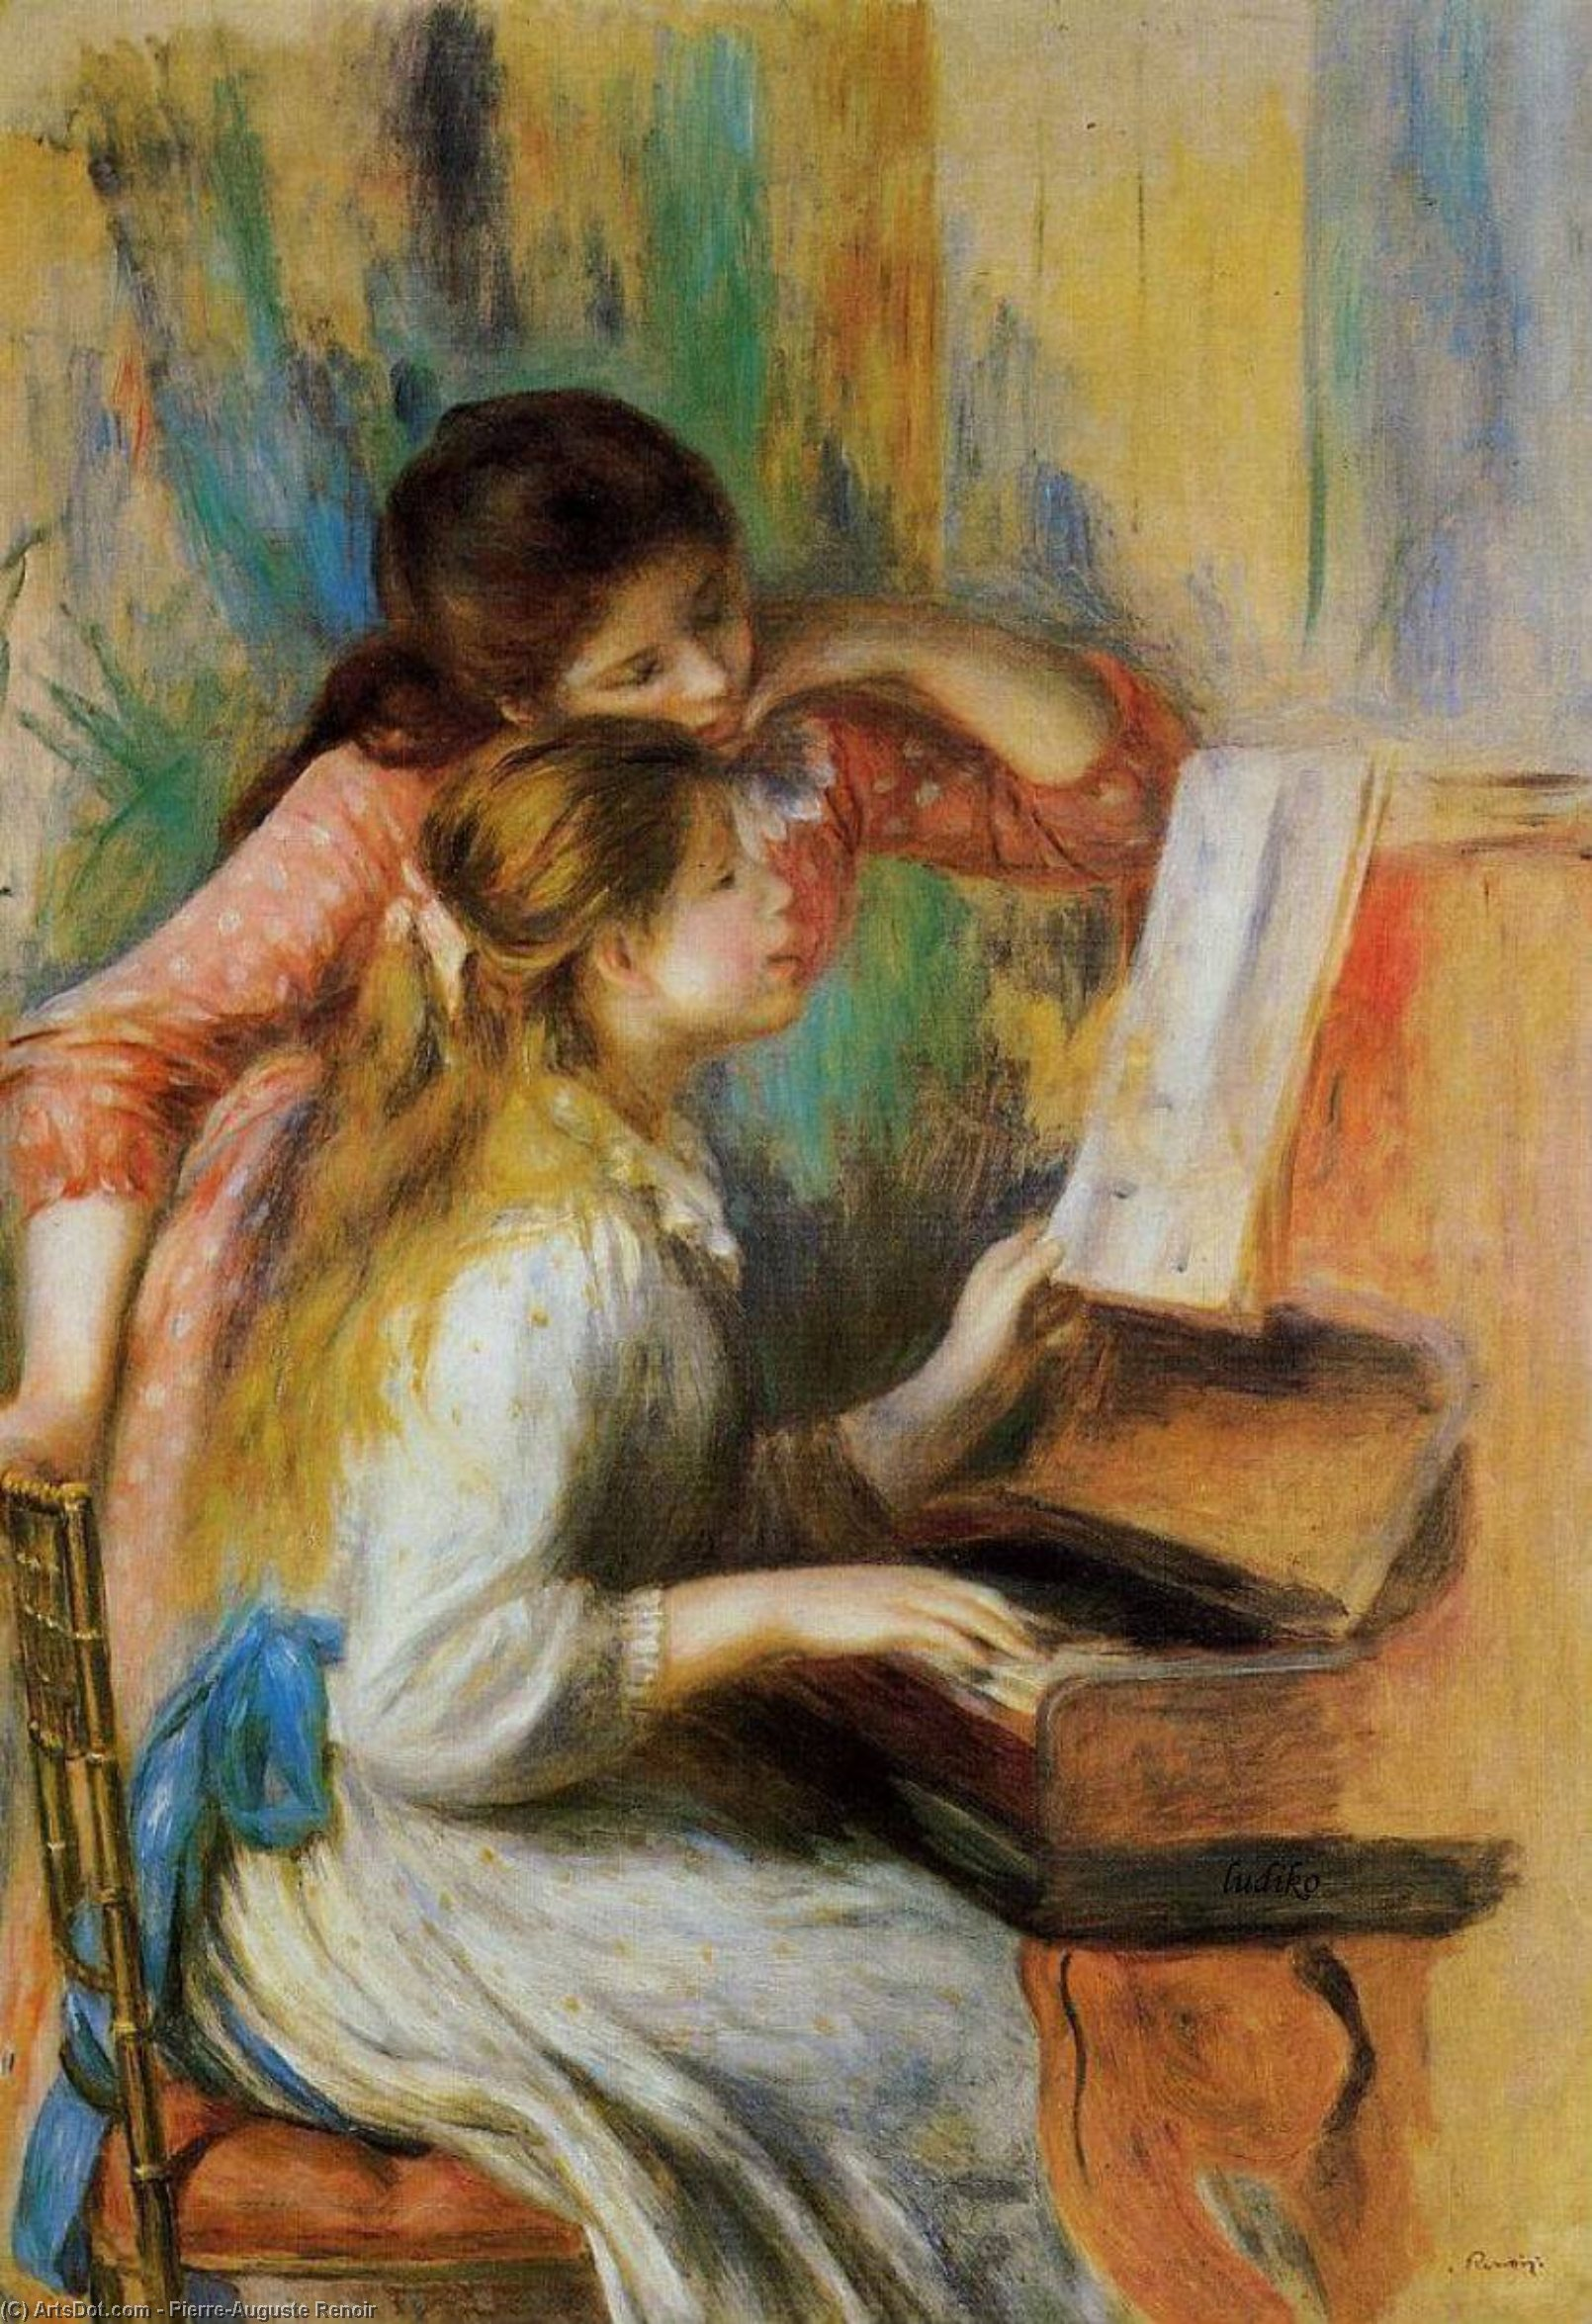 Wikioo.org - The Encyclopedia of Fine Arts - Painting, Artwork by Pierre-Auguste Renoir - Girls at the Piano